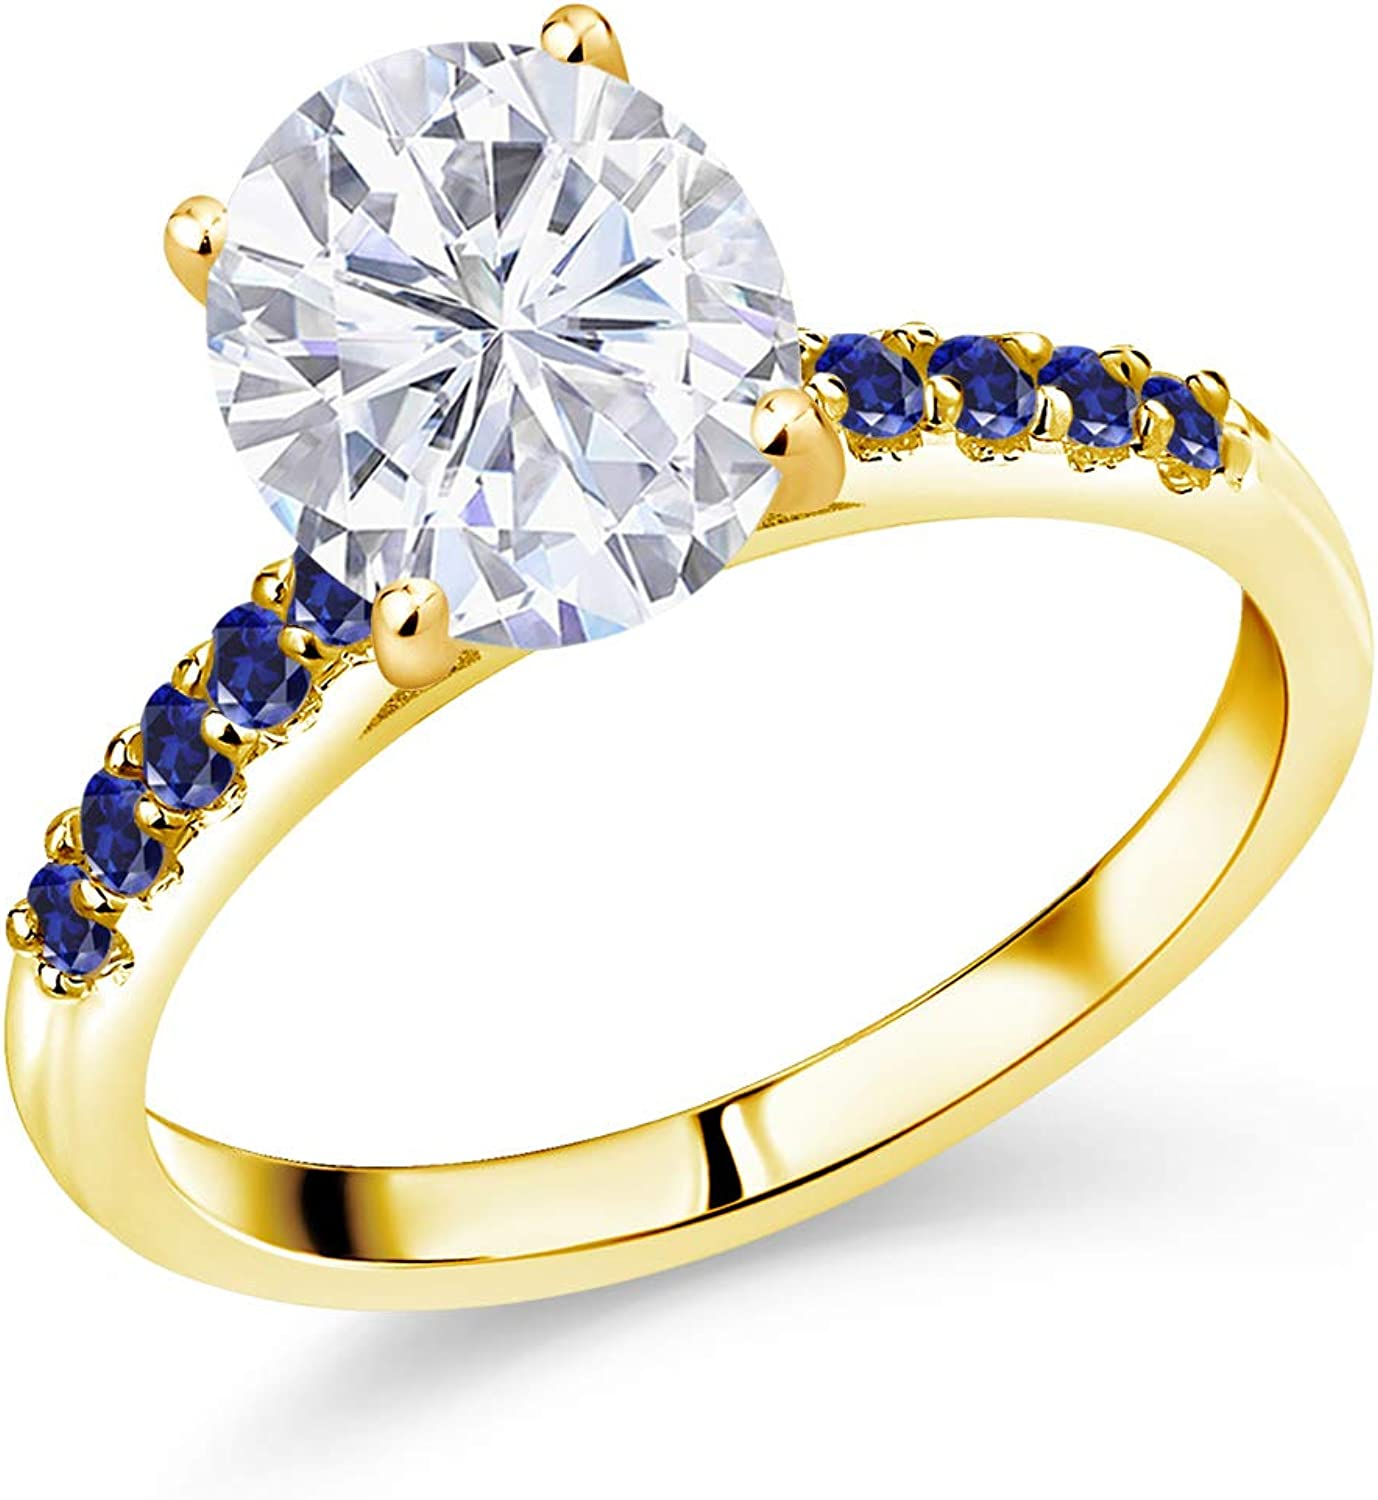 10K Max 69% OFF Yellow Gold Ring Set with Cr outlet 4.65cttw Forever GHI One Oval